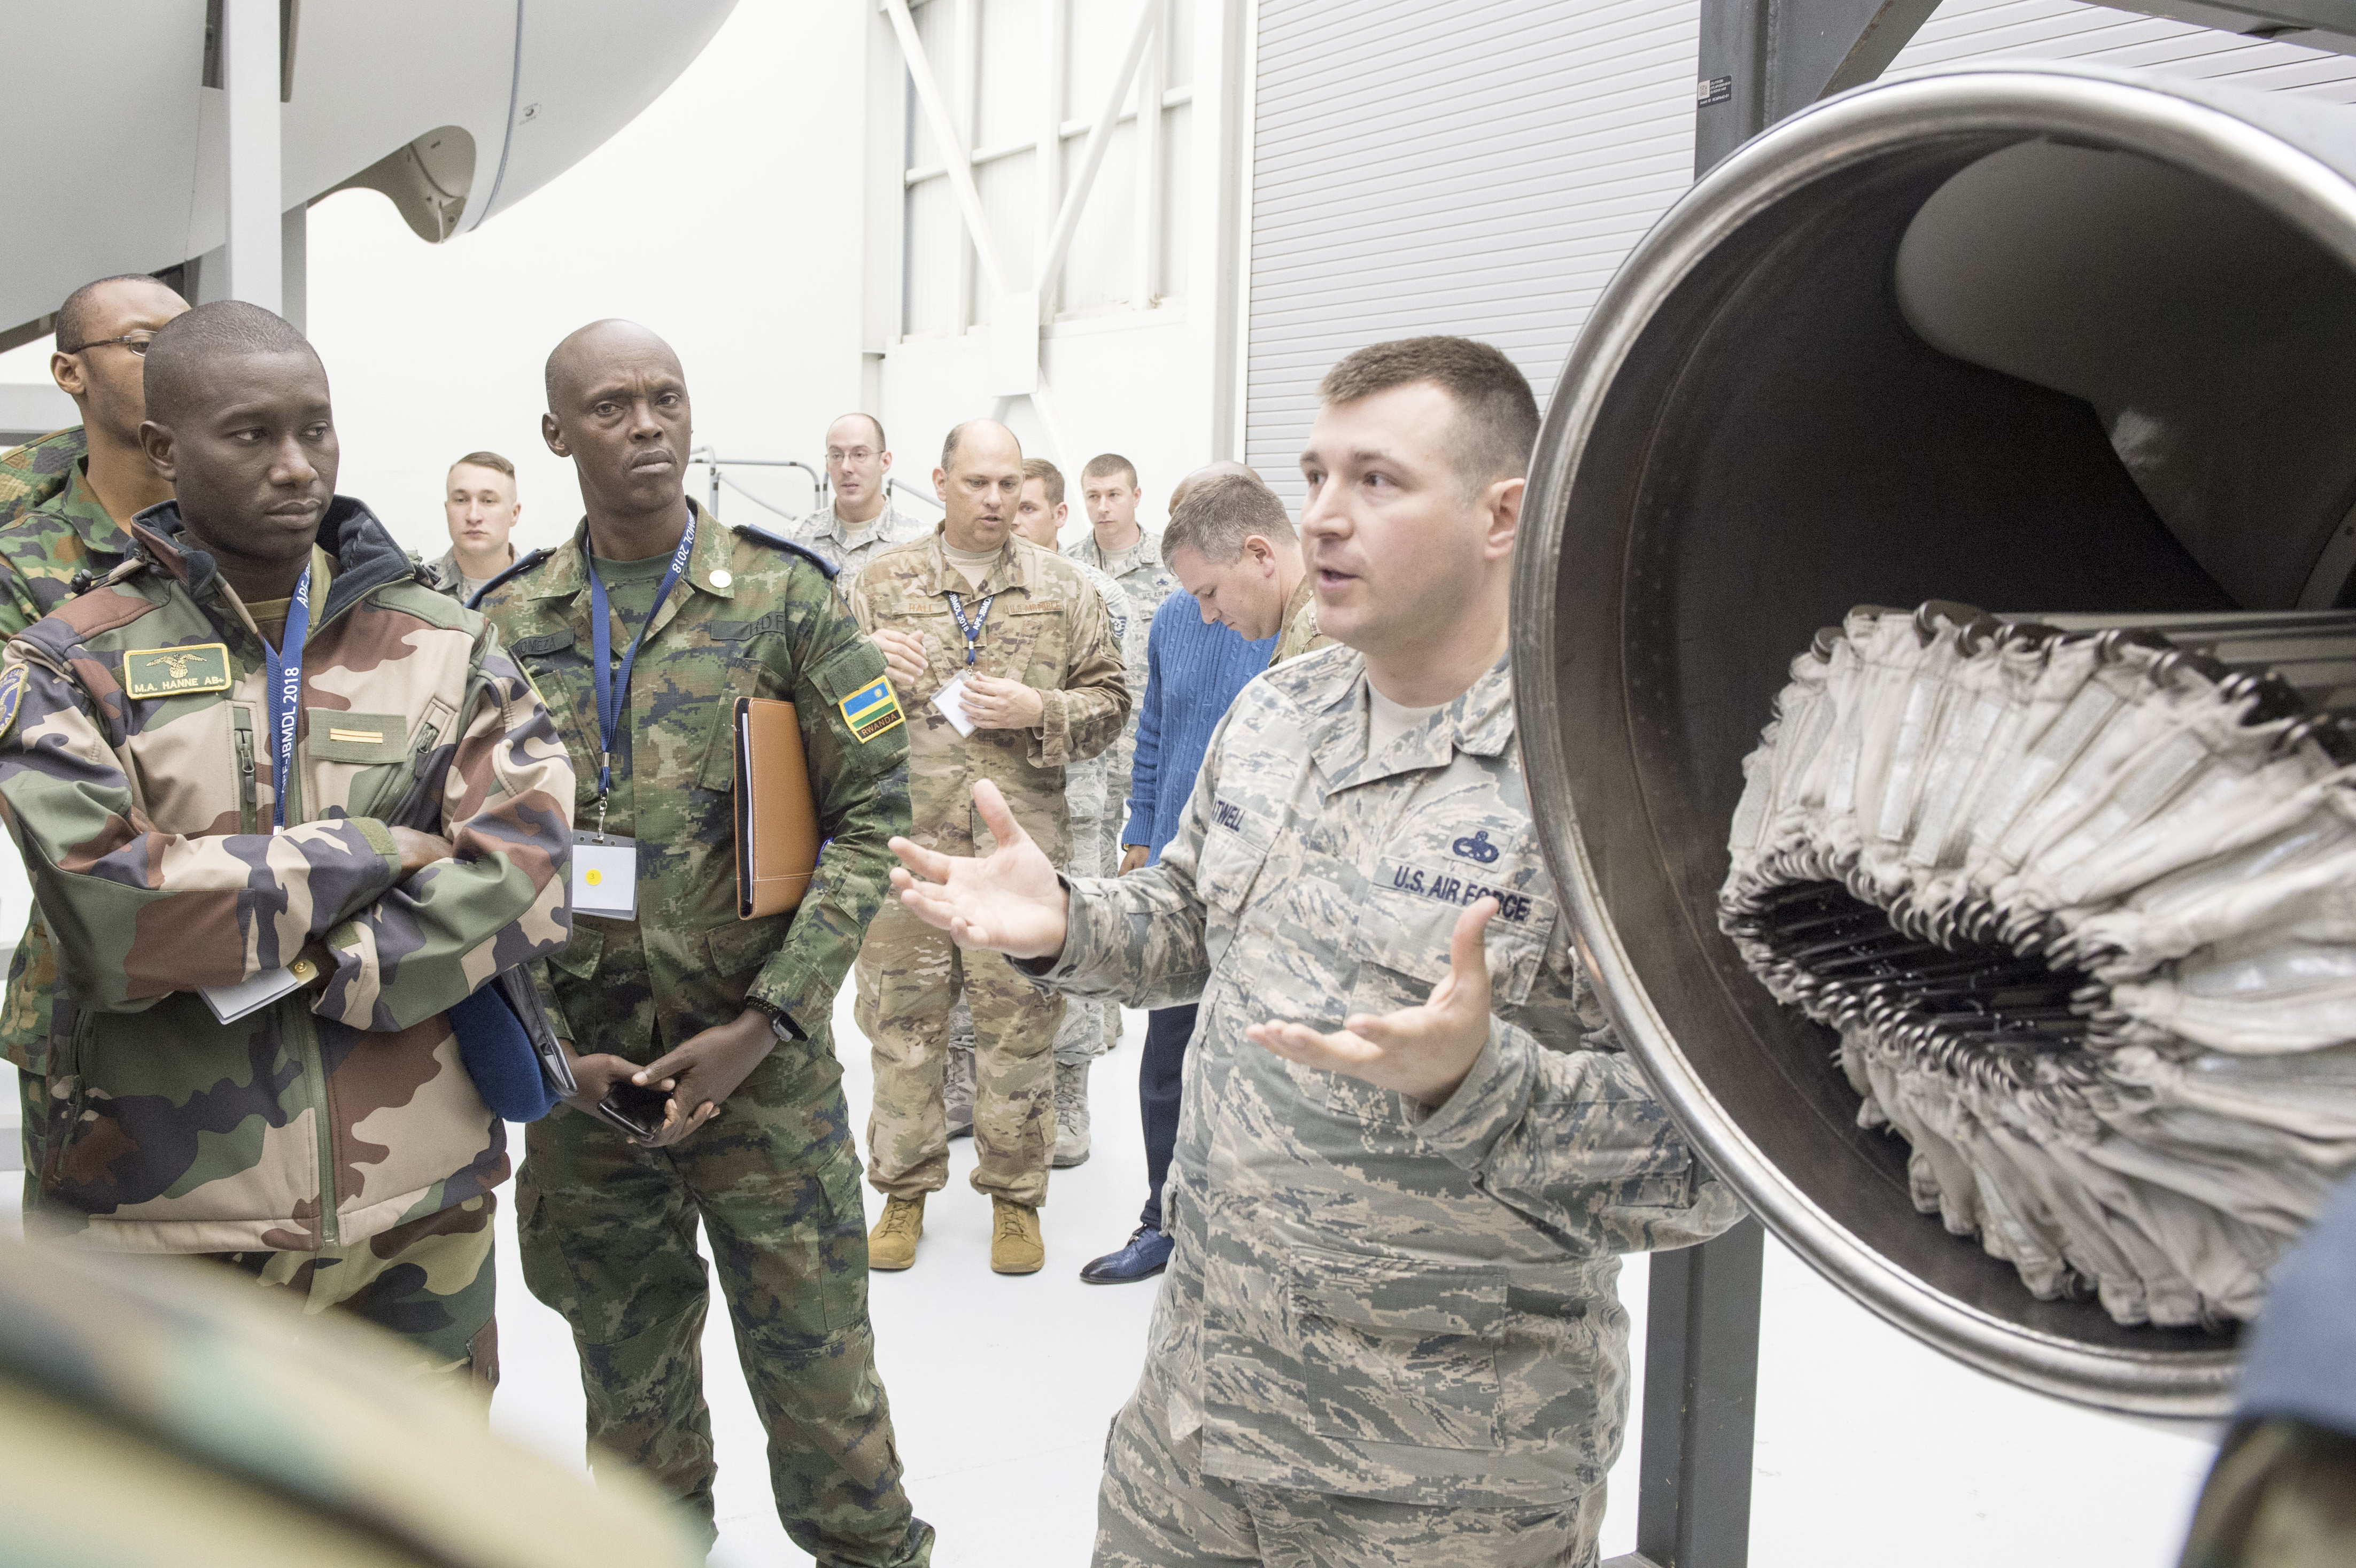 U.S. Air Force Master Sgt. David Atwell, 305th Maintenance Operations Squadron, briefs participants of the African Partnership Flight on refueling pods at Joint Base McGuire-Dix-Lakehurst, N.J., April 18, 2018. APF creates partnerships among a myriad of organizations who have not traditionally worked with each other in the past to achieve common interests through collaboration. (U.S. Air Force photo by Tech. Sgt. Gustavo Gonzalez)